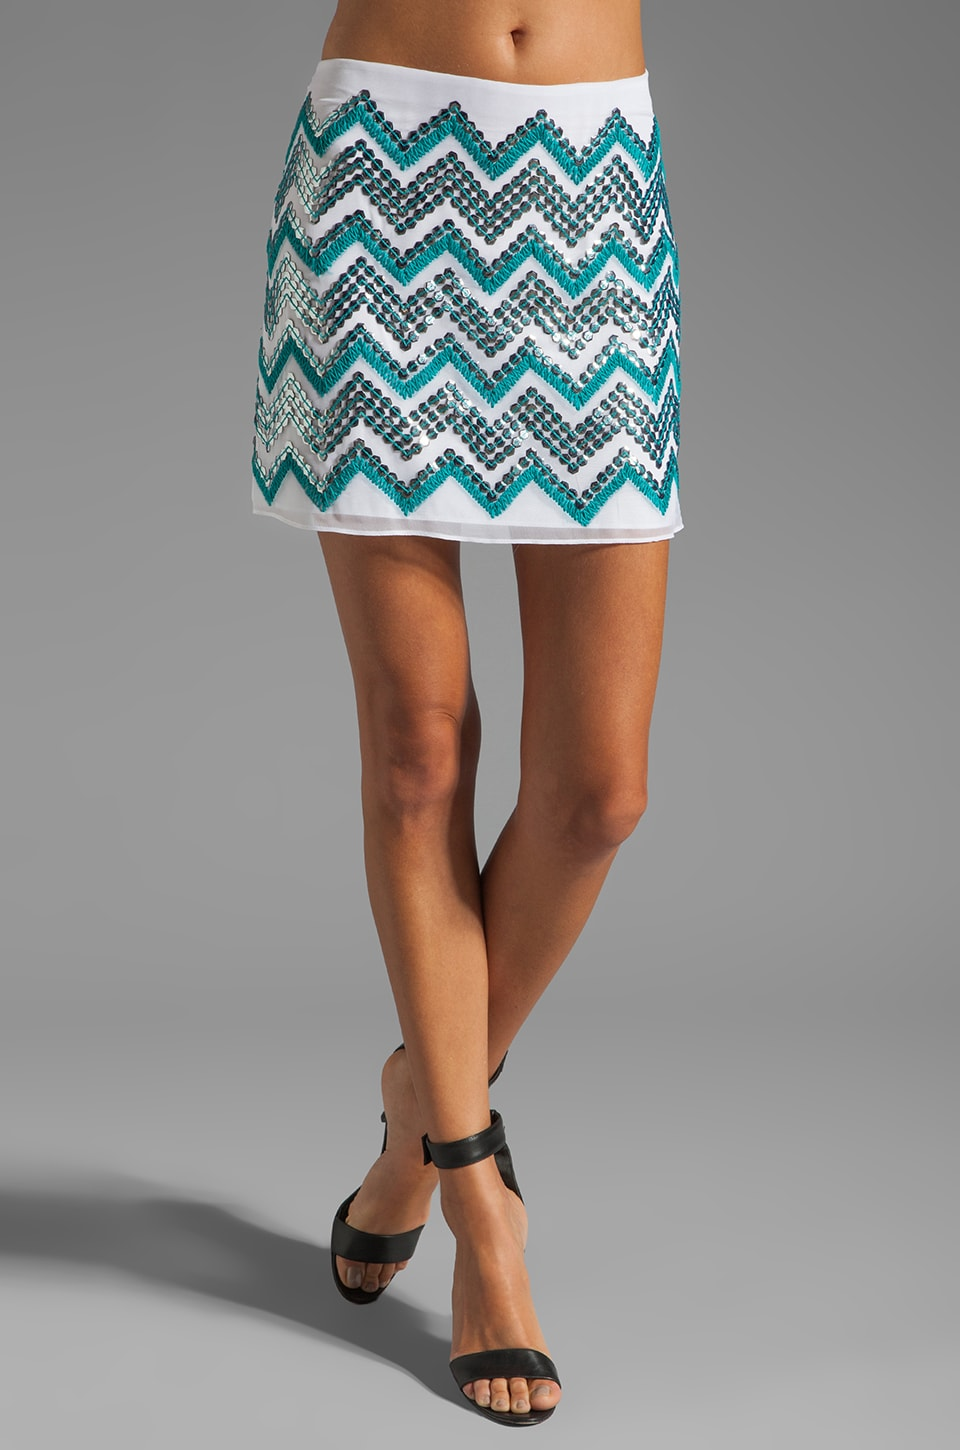 MILLY Mirrored Paillette Embroidered Mini Skirt in Ecru and Aqua